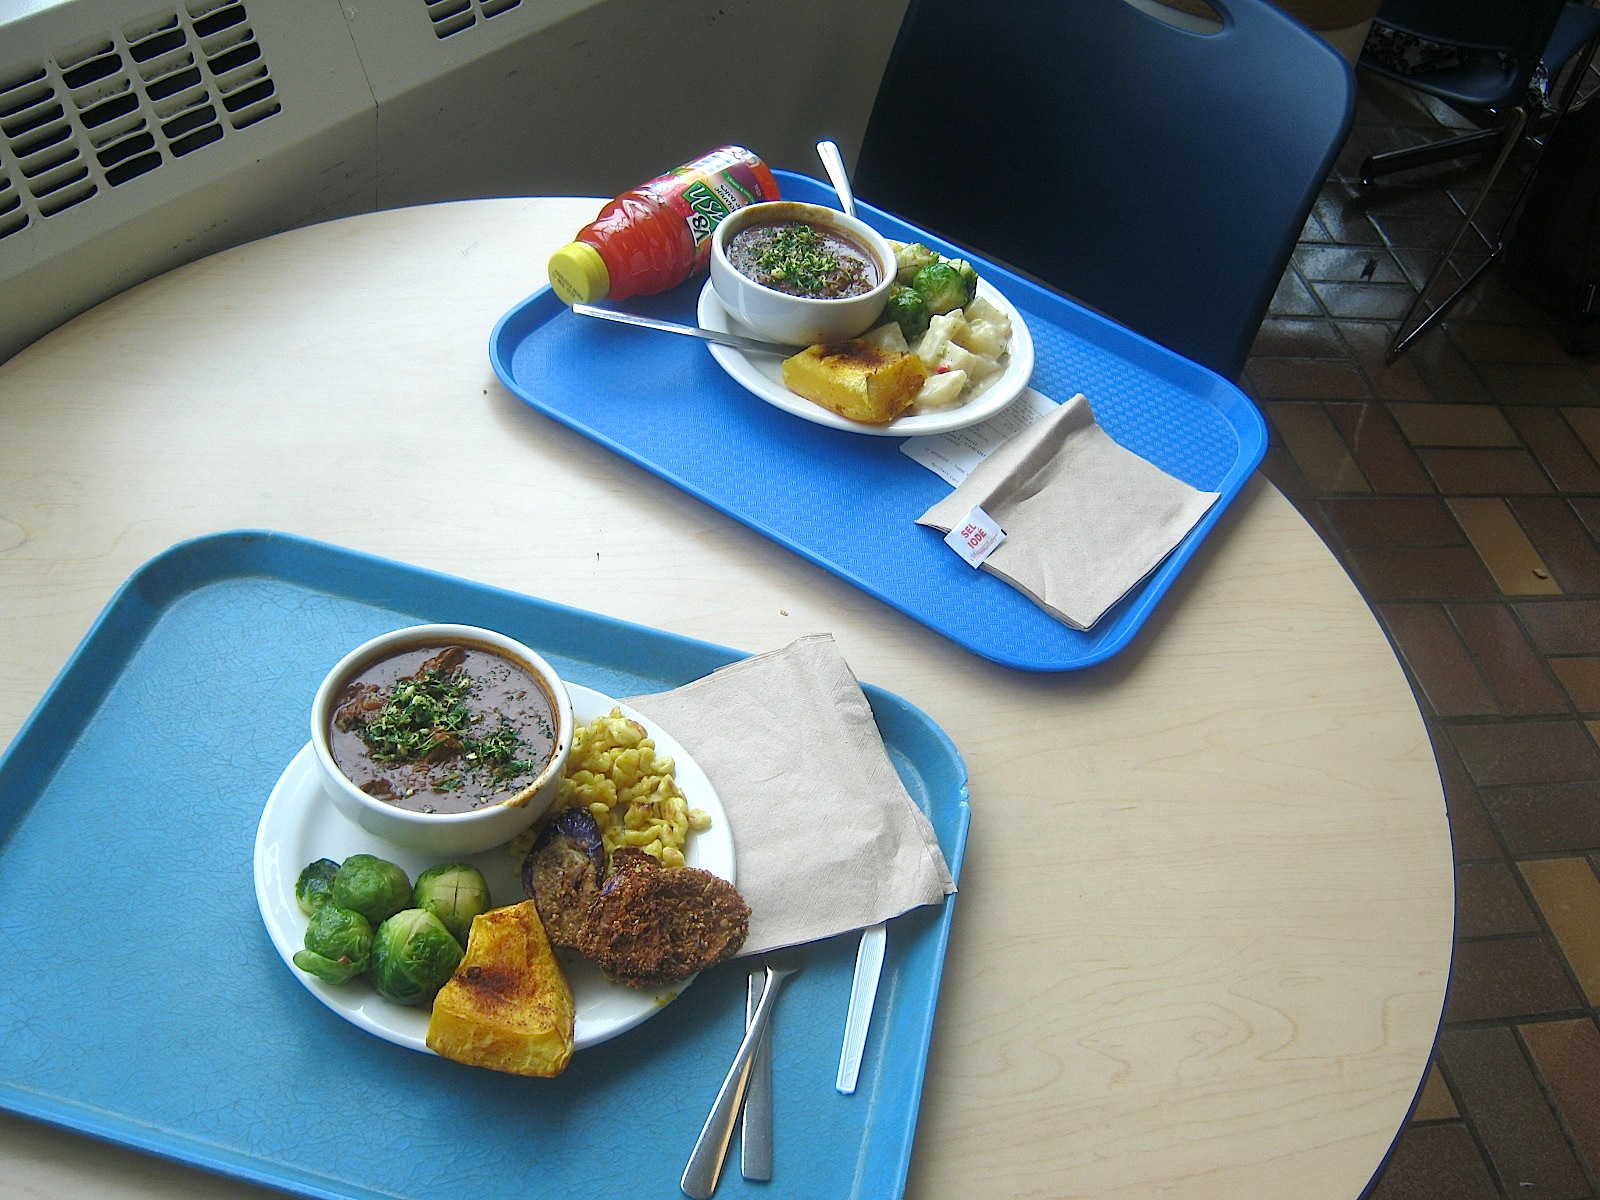 somerville kitchen: Eating in a Classroom